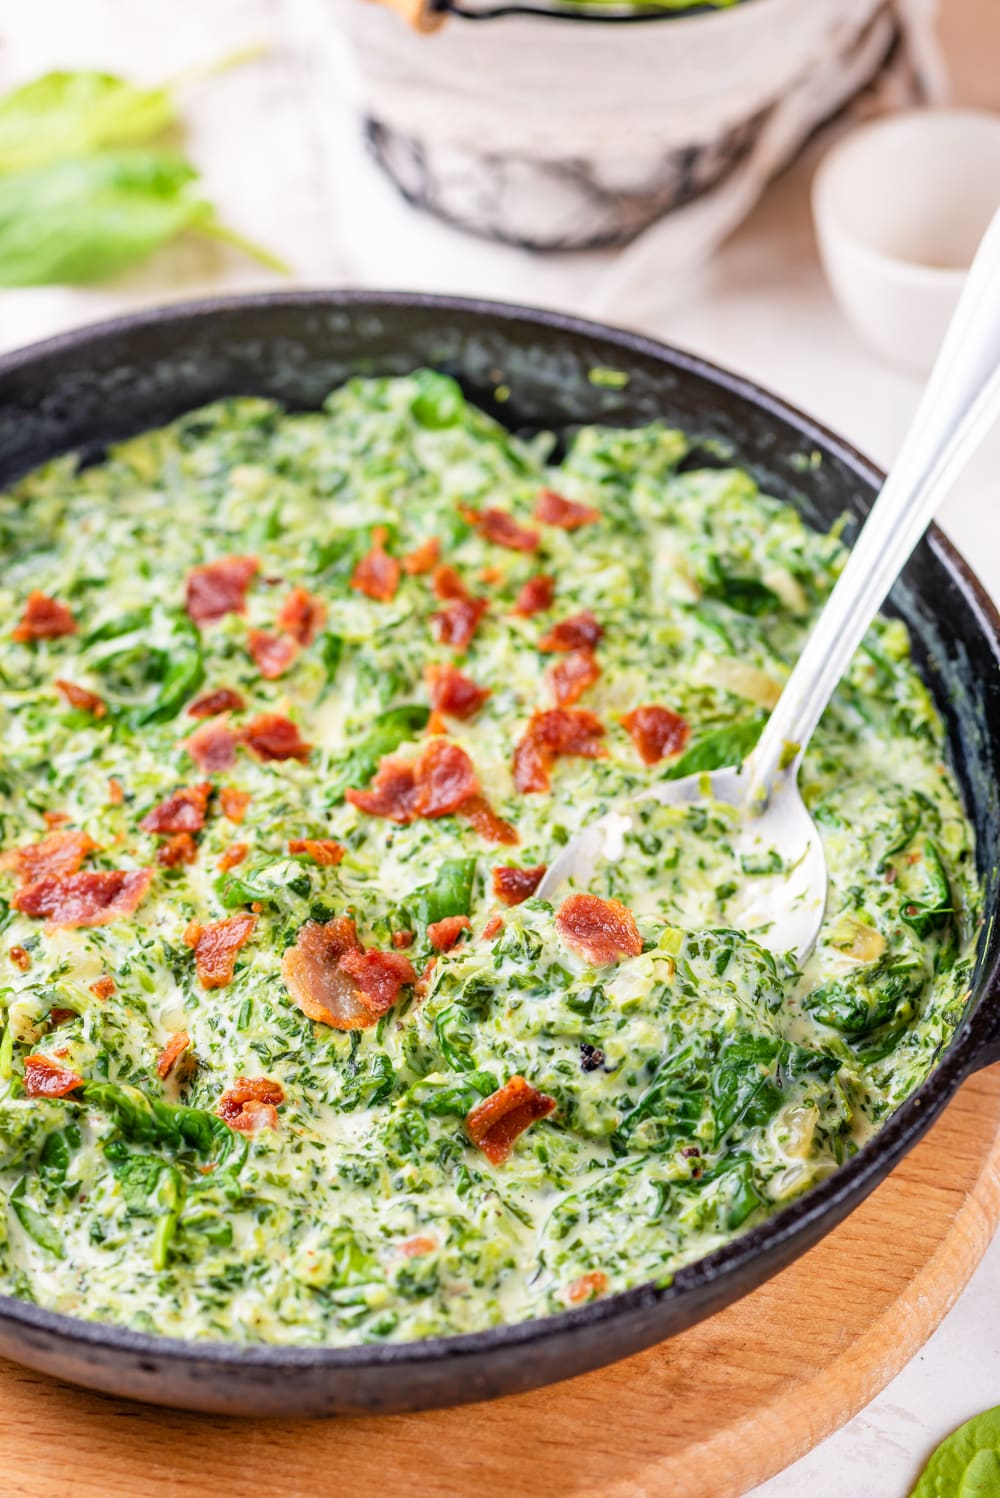 A cast iron pan filled with creamed spinach and bacon crumbles with a spoon for serving in the pan.